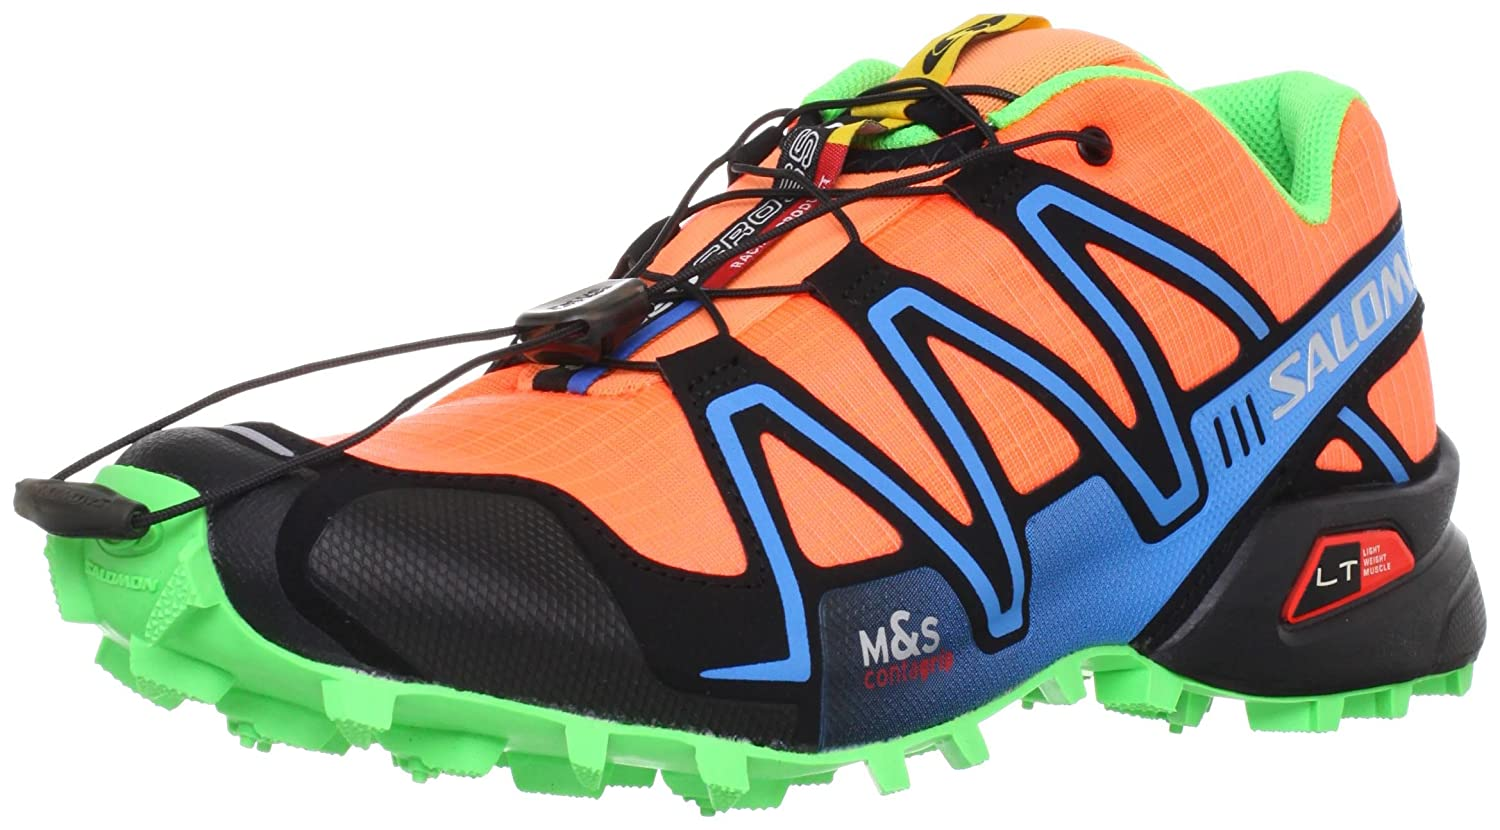 Salomon D(M) Men's Speedcross 3 Trail Running Shoe B008JEW0W0 12 D(M) Salomon US|Flou Orange/Fluo Blue/Fluo Green d5b381